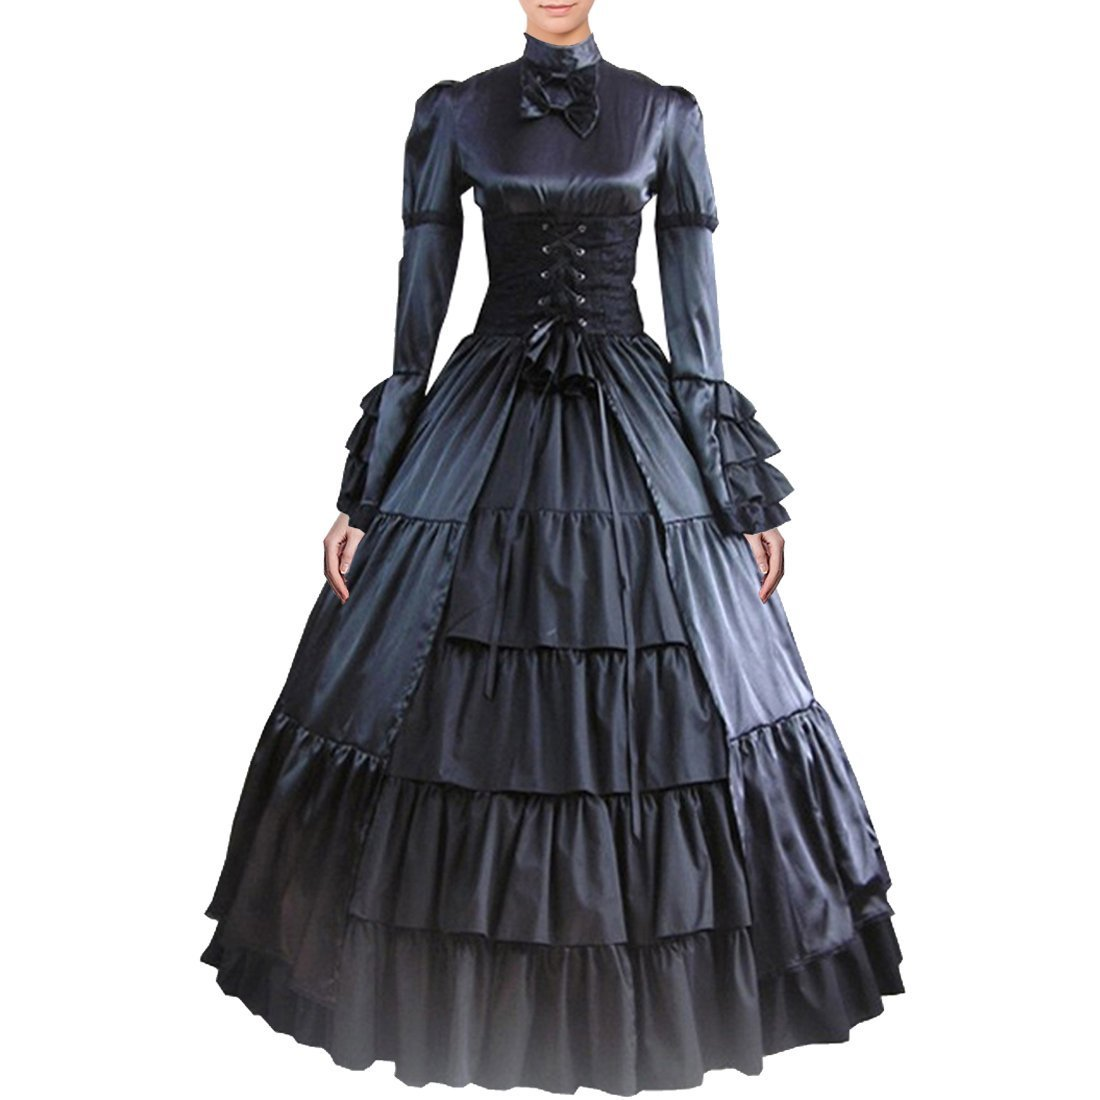 Fancy Dress Store Partiss Women Bowknot Stand Collar Gothic Victorian Dress Costumes M,Black by Fancy Dress Store (Image #1)